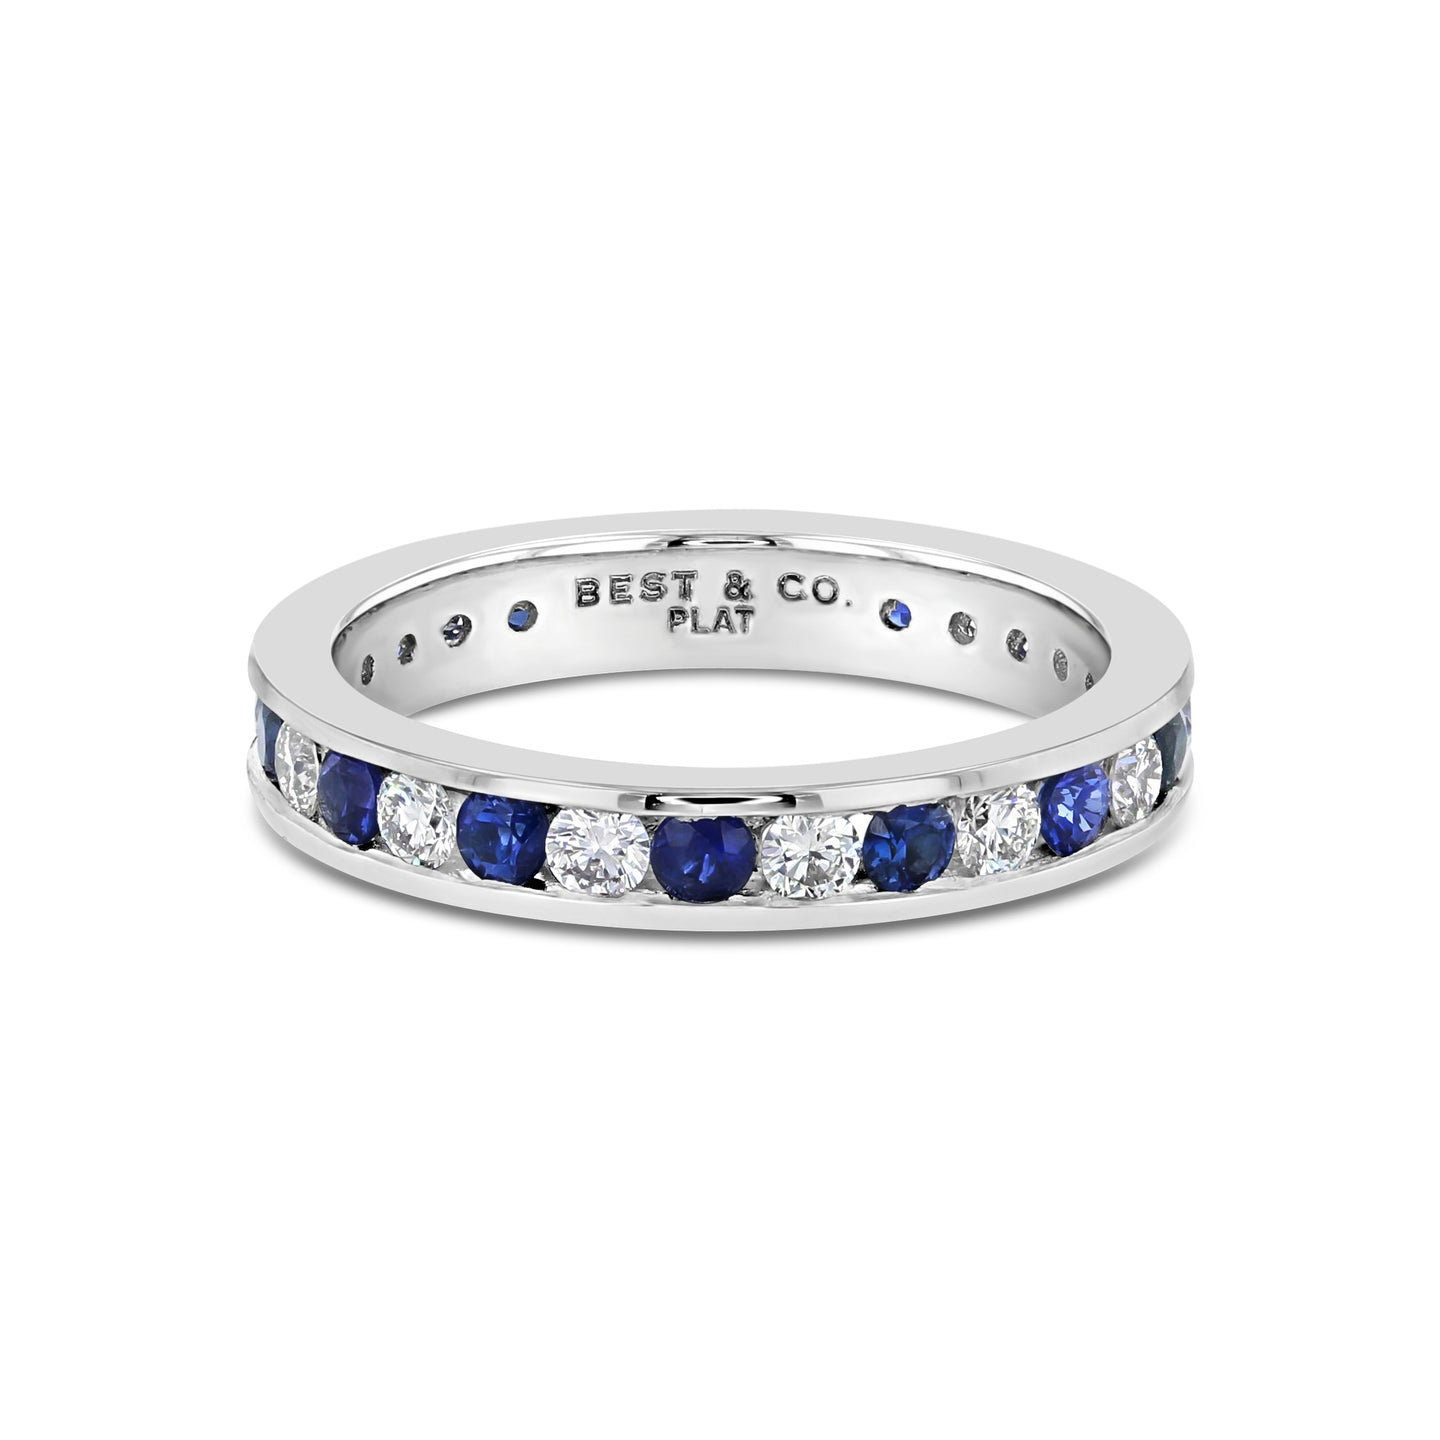 Blue Sapphire and Diamond Band - Best & Co.